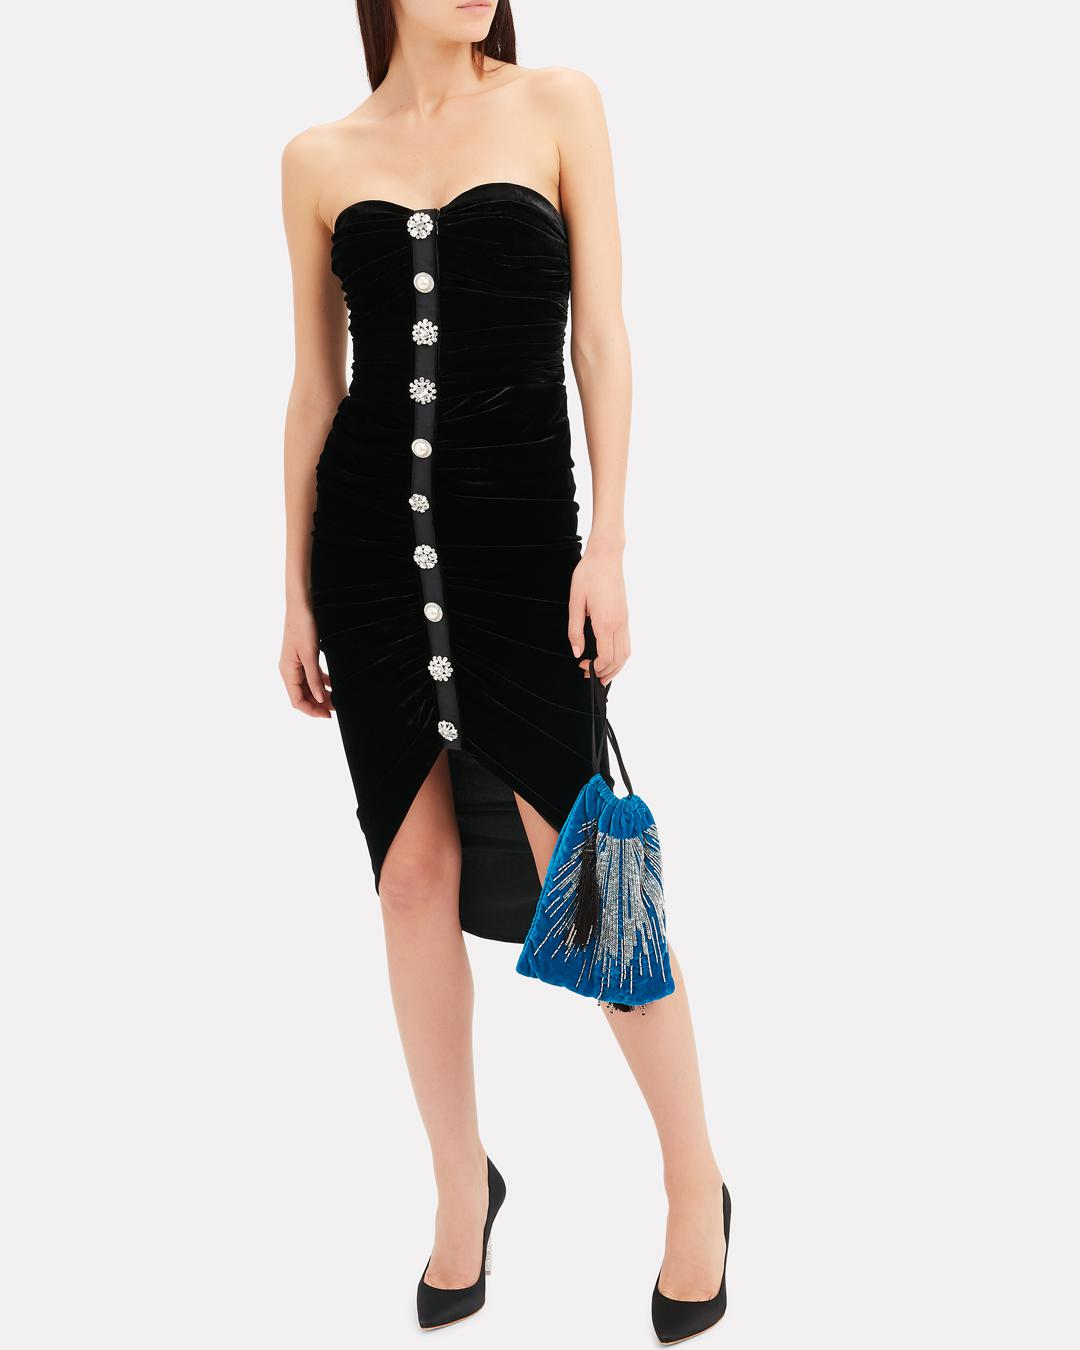 7e1557fafa9 Veronica Beard Palo Strapless Ruched Velvet Button-front Cocktail Dress in  Black - Save 12.93103448275862% - Lyst